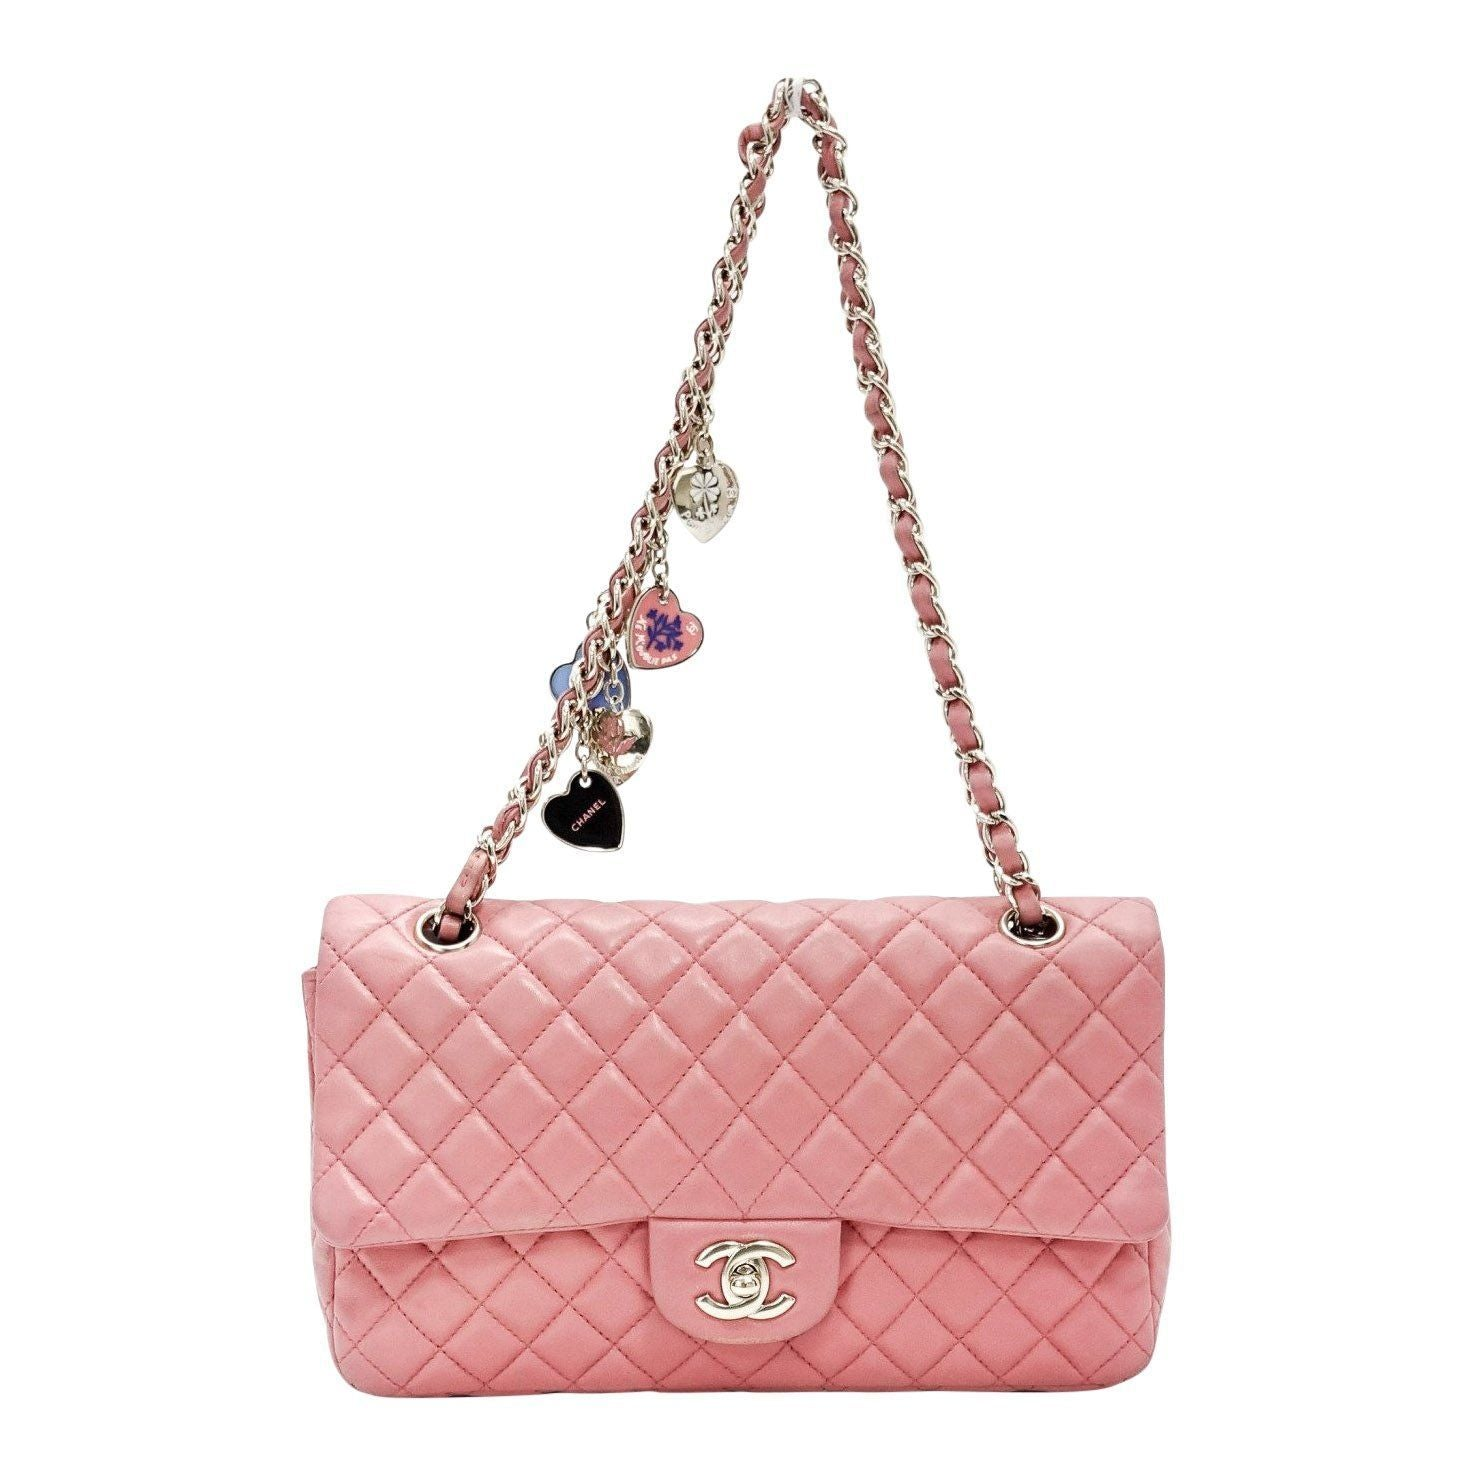 a1fb58405771 Chanel Pink Quilted Lambskin Leather Valentine Flap Bag Bags Chanel ...